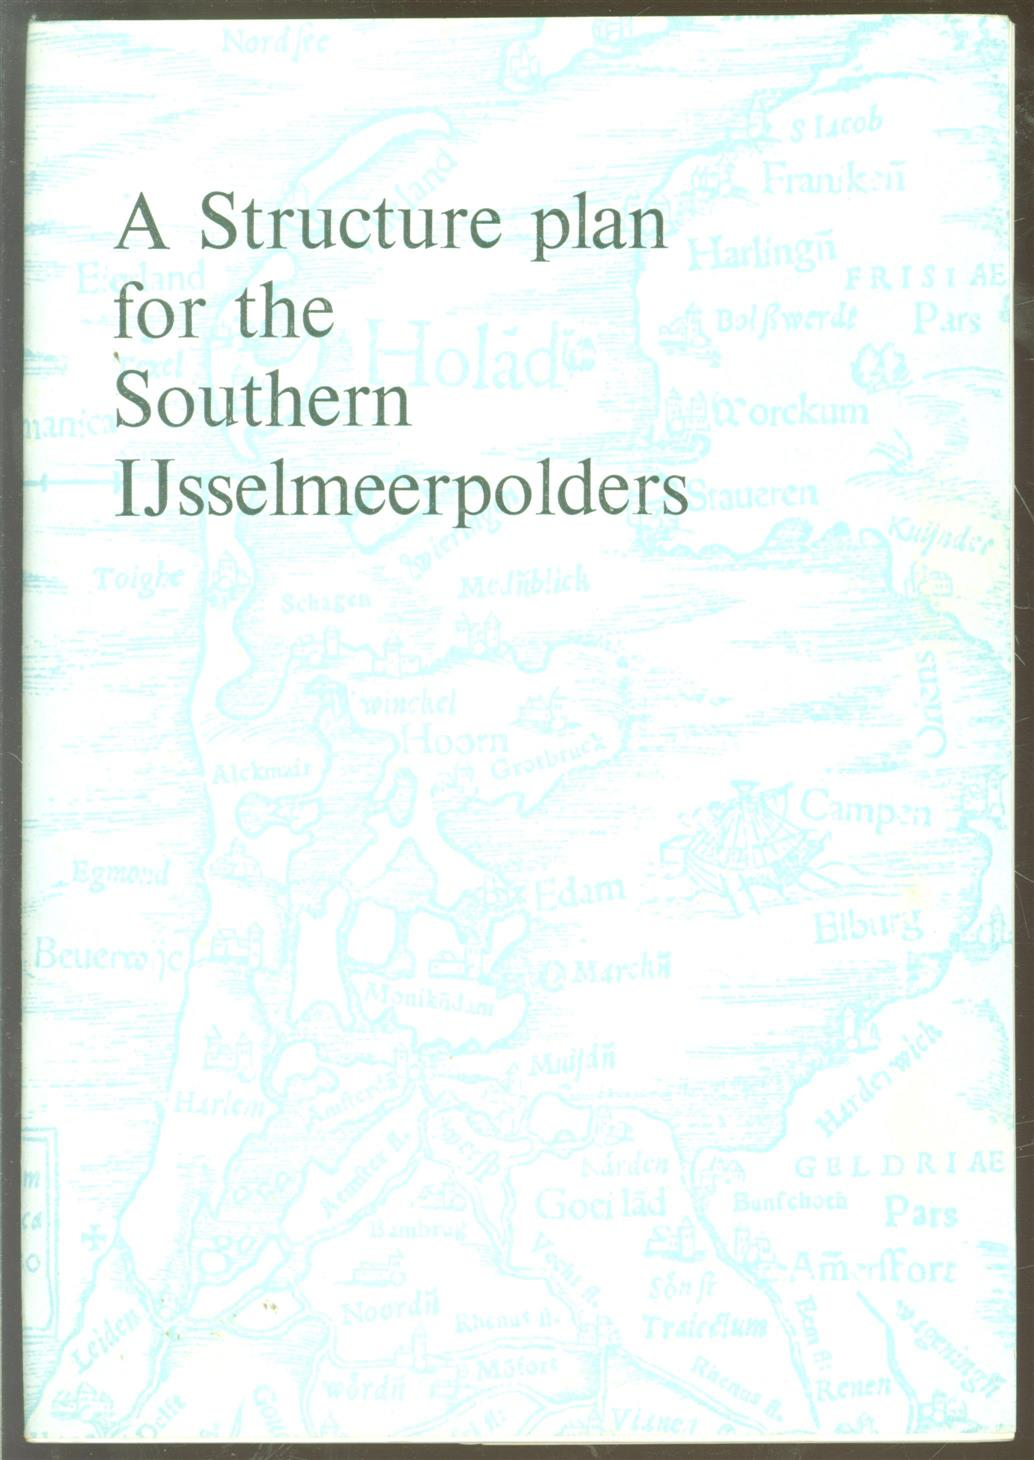 A structure plan for the so...